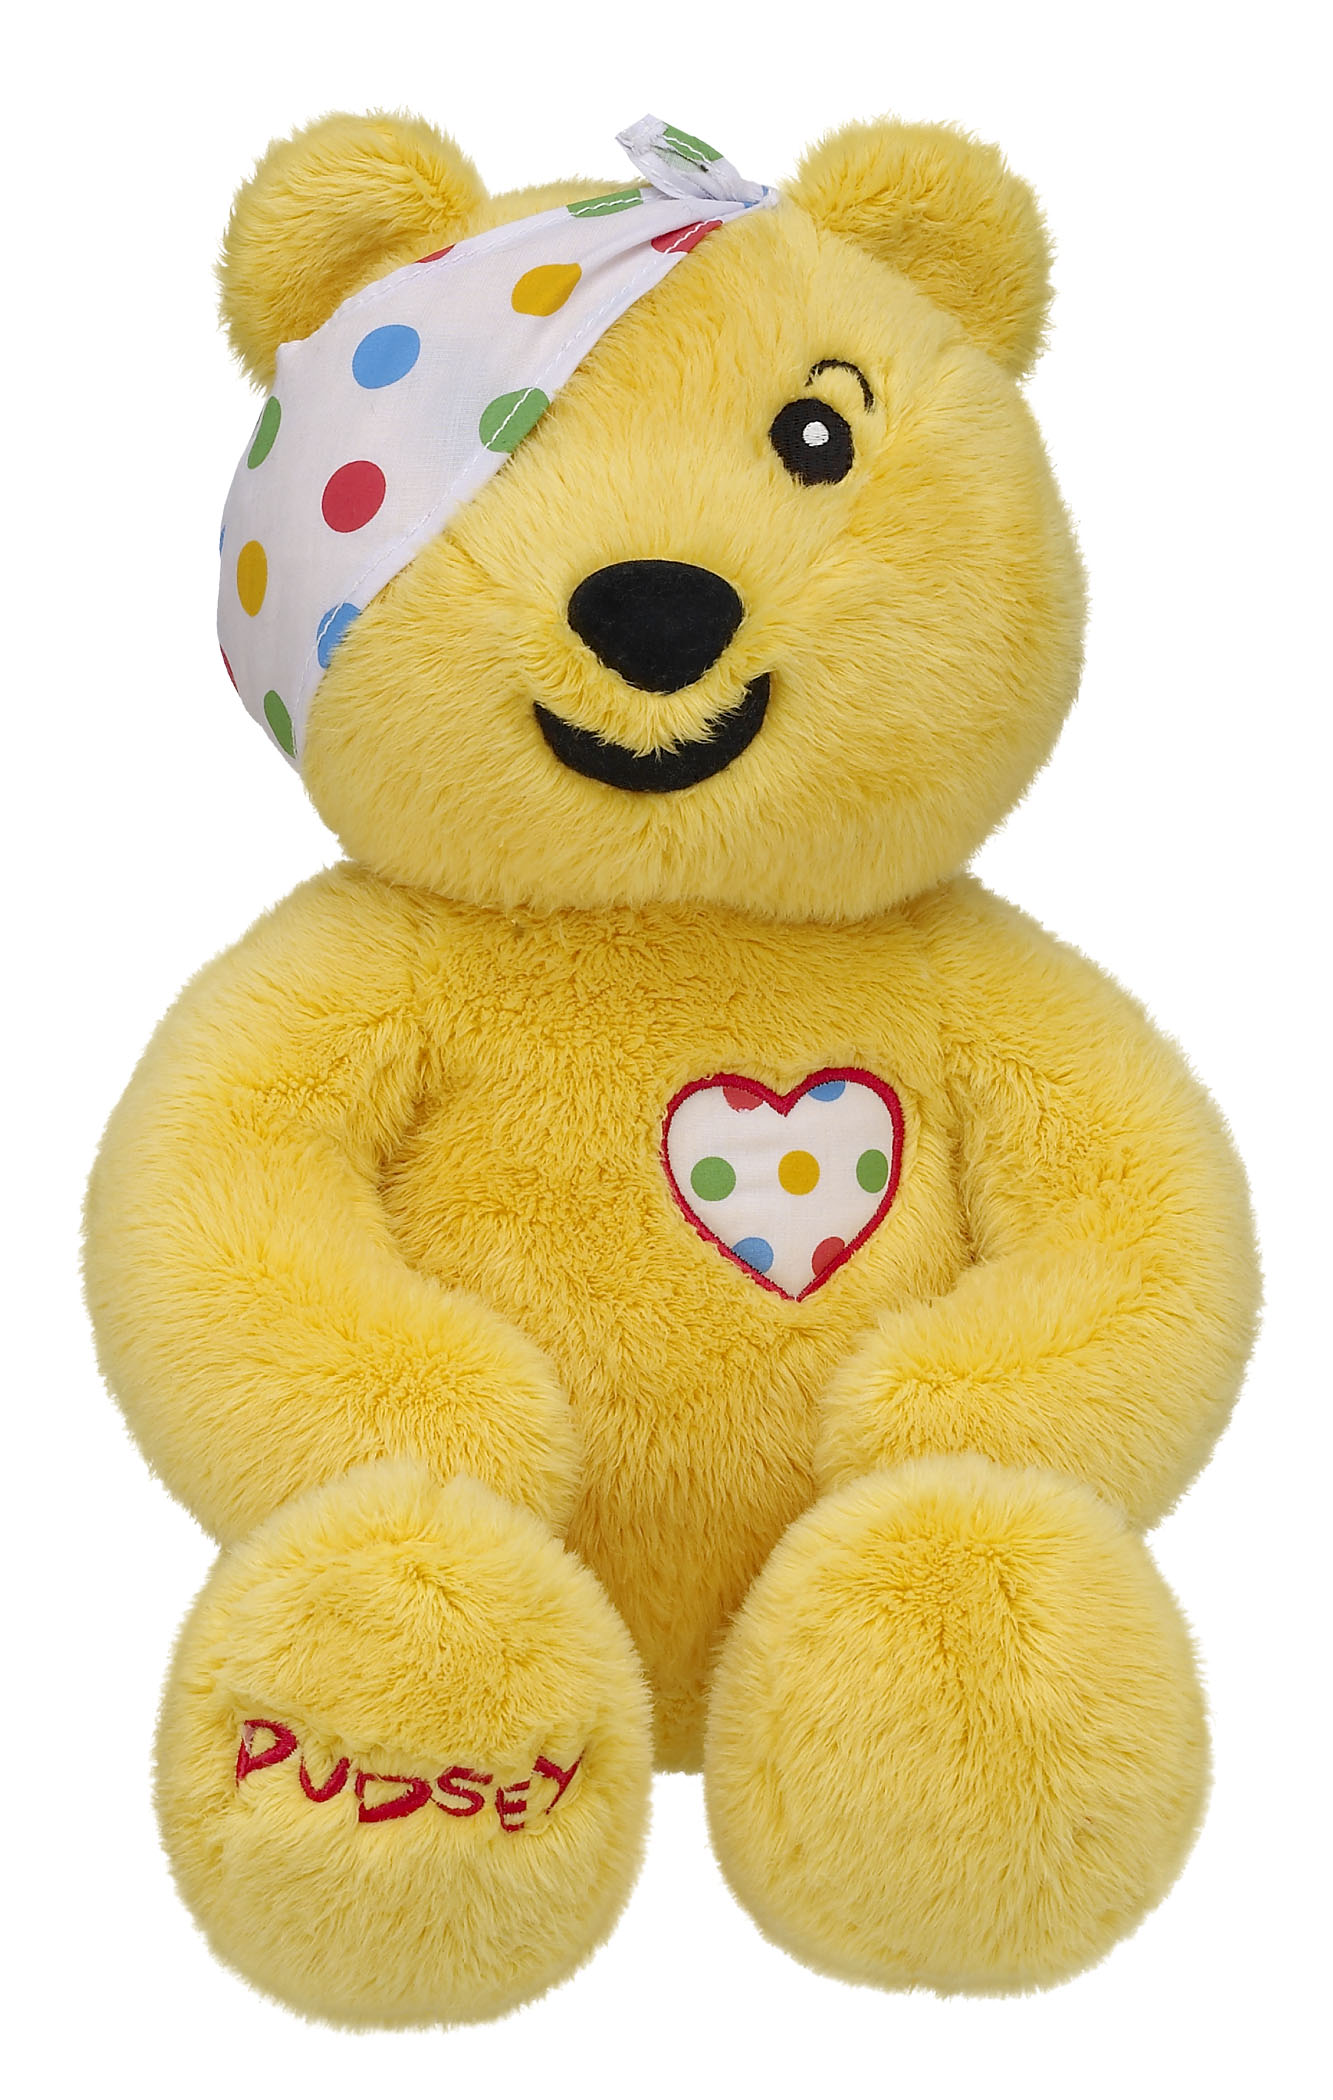 Build The Bear: Baking With Children: Perfect Pudsey Bear Cookies